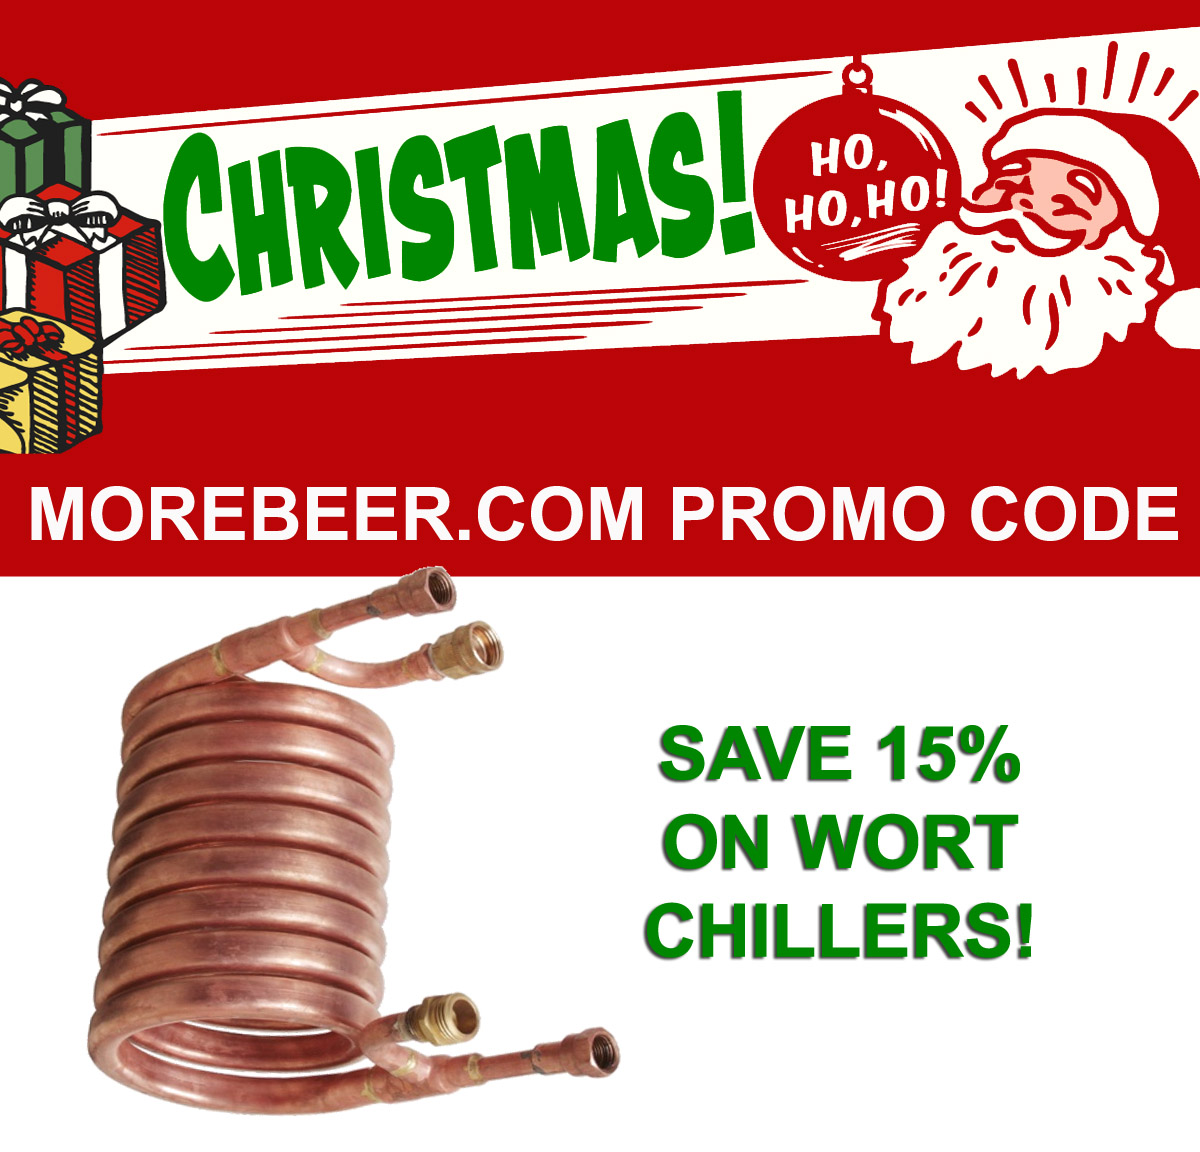 Home Brewer Promo Code for Save 15% On Wort Chillers Today Only At MoreBeer! Coupon Code